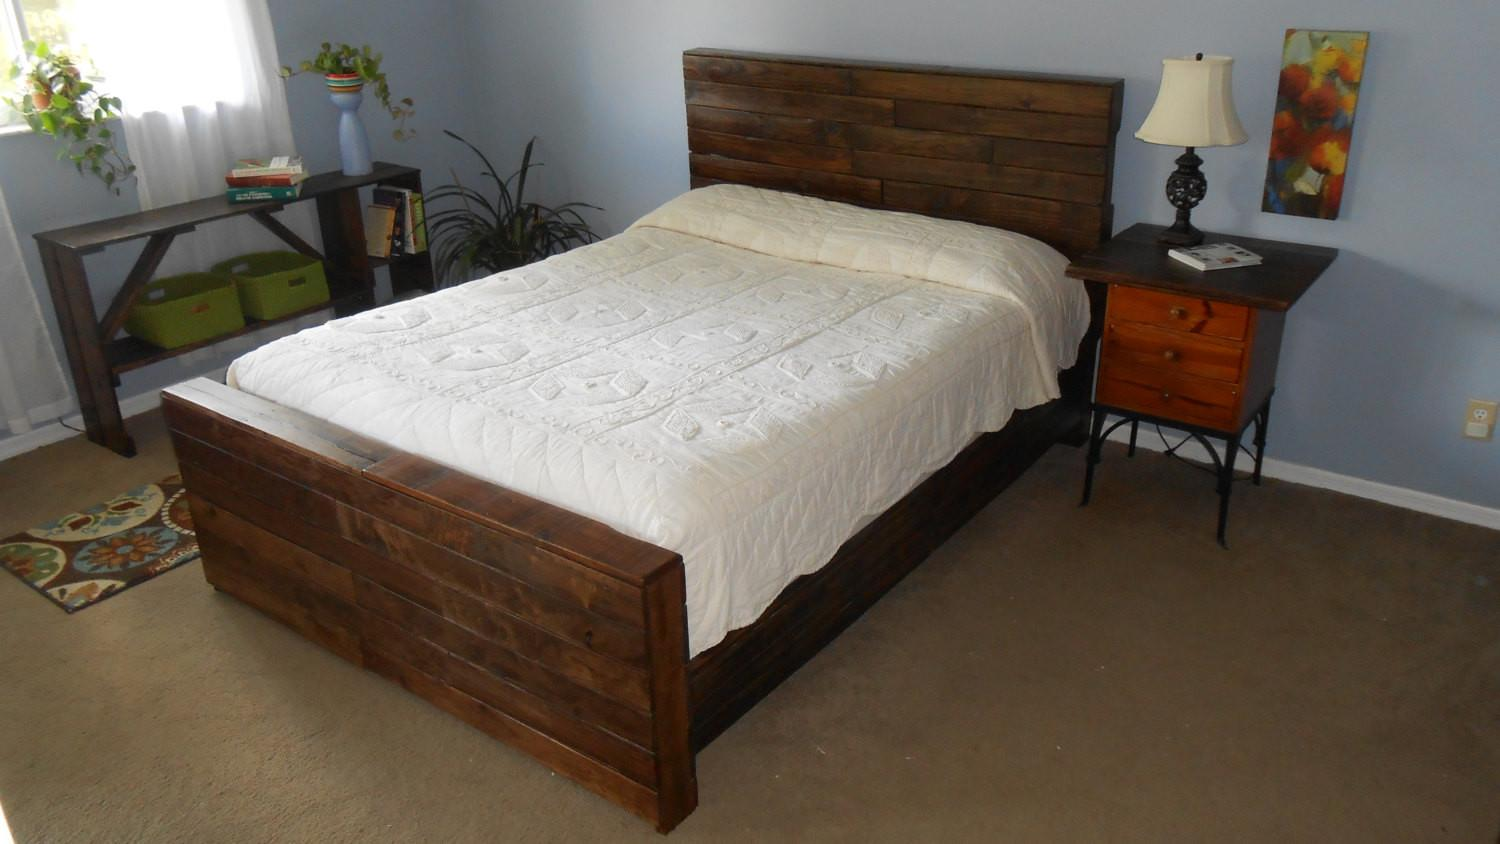 Work Witk Good Wood Design Cool Diy Rustic Projects